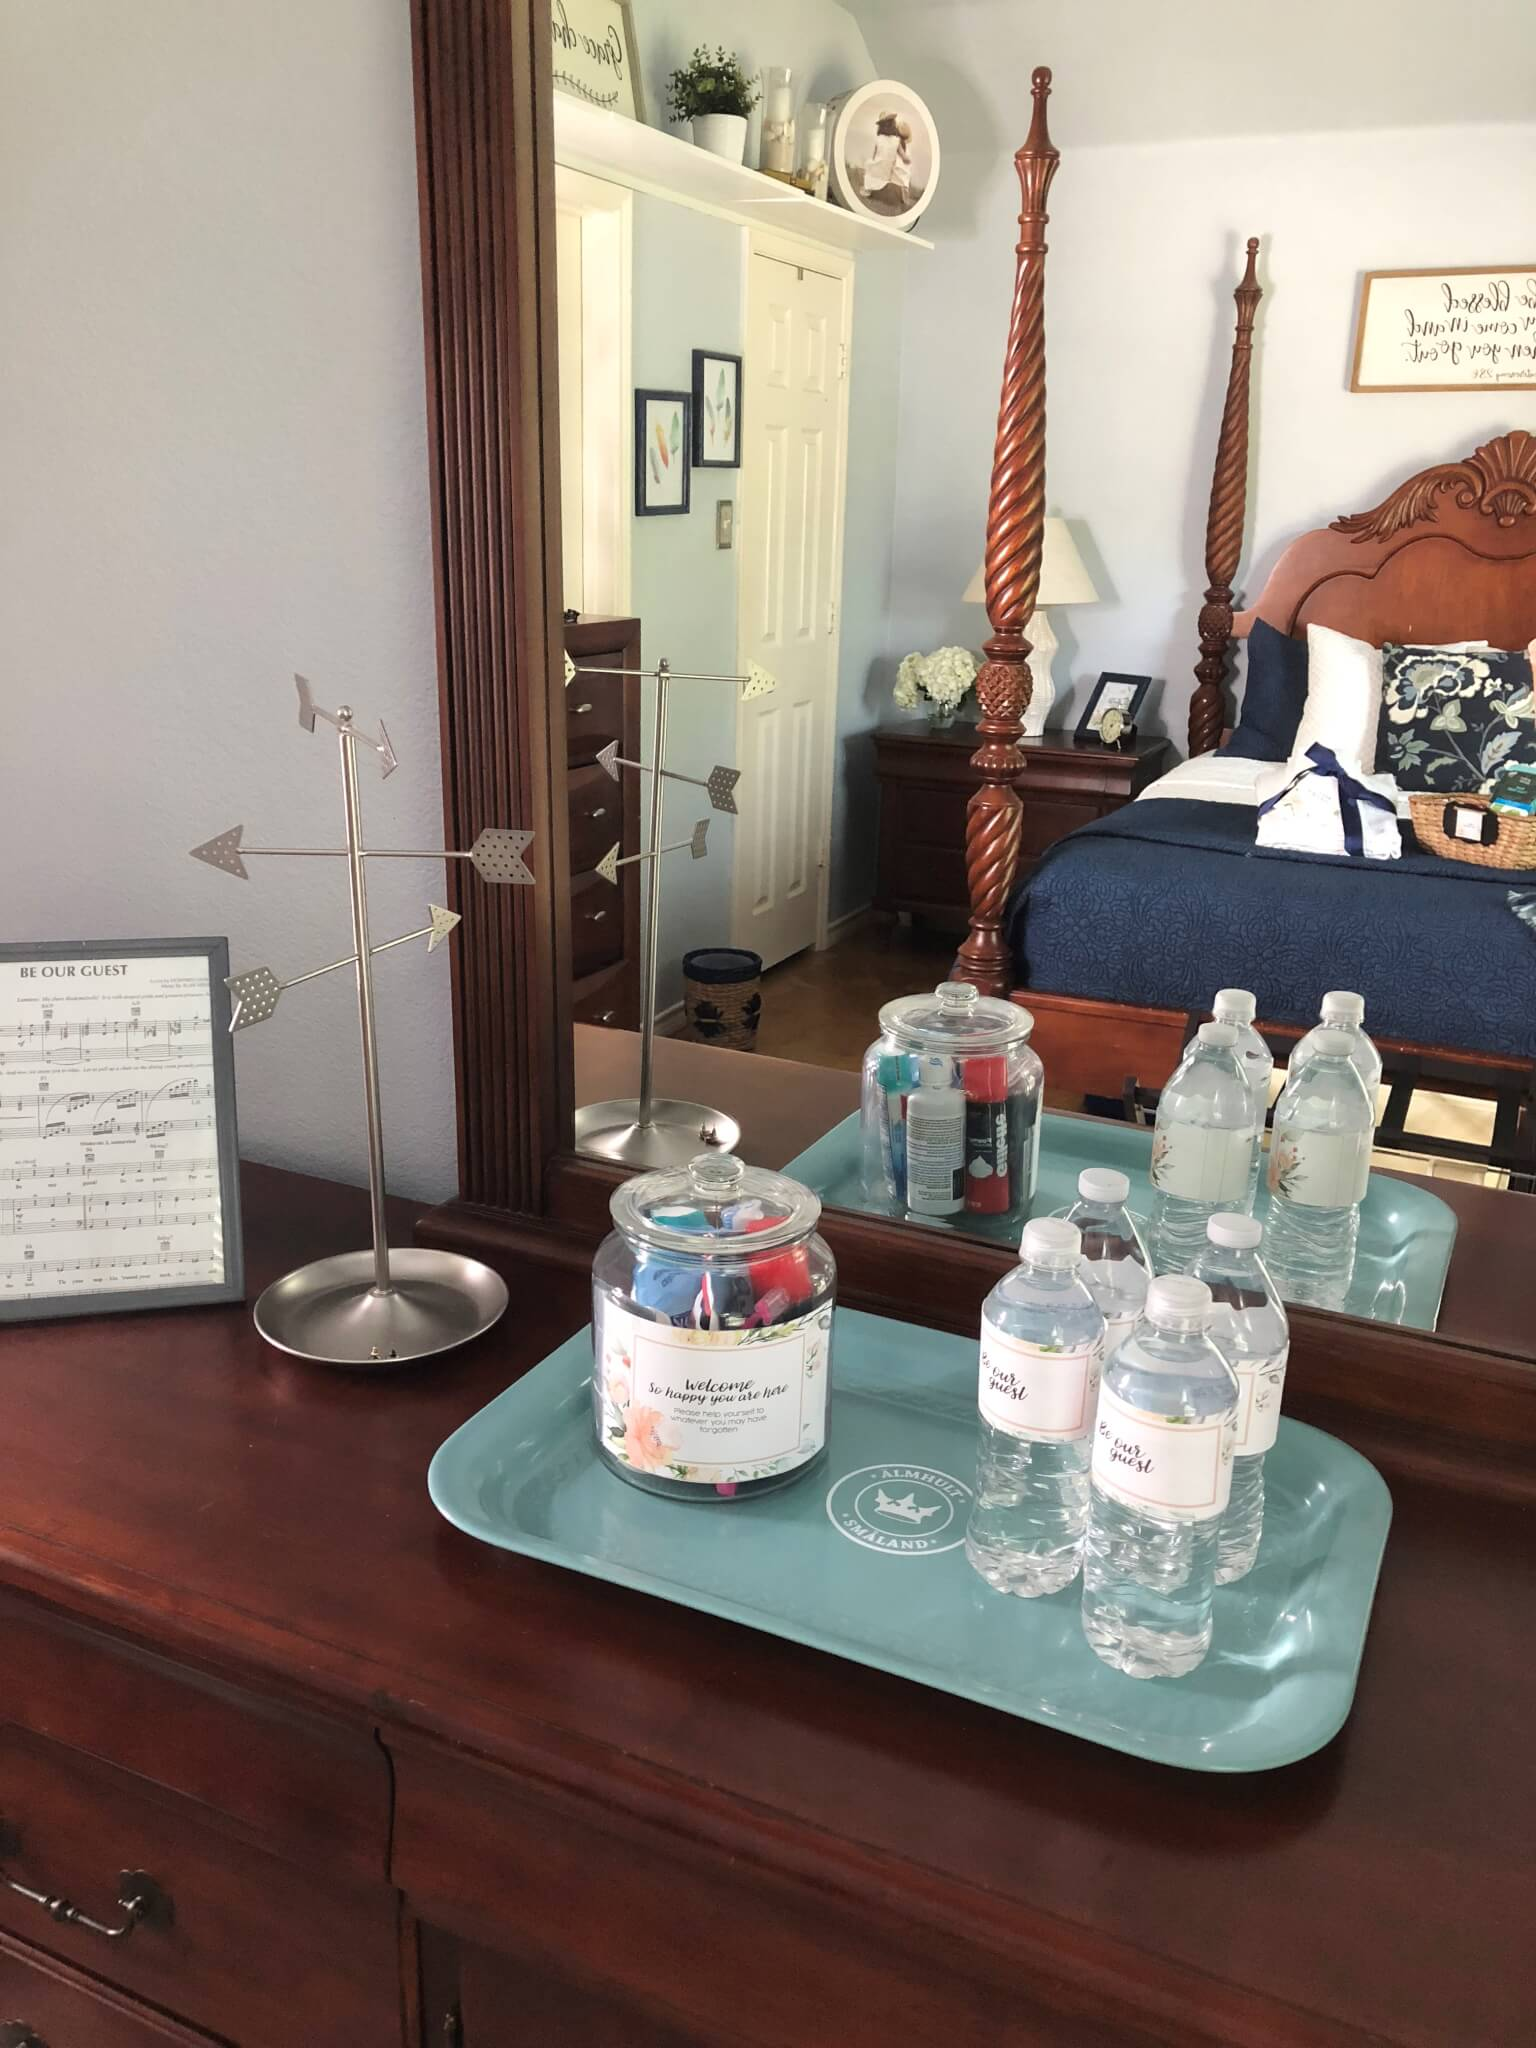 guest room dresser with tray for toiletries and water bottles